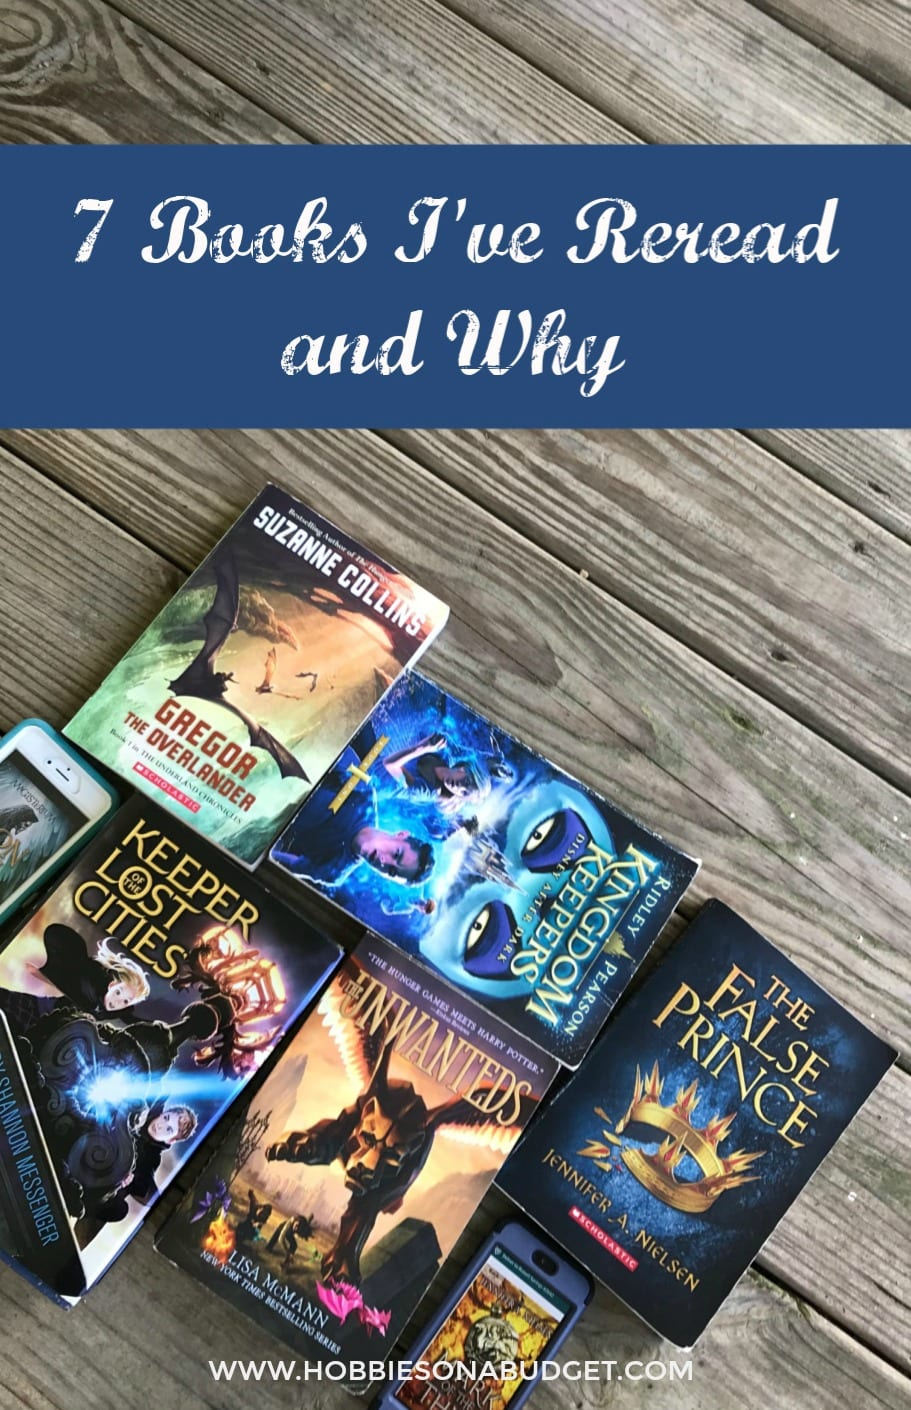 7 BOOKS I'VE REREAD AND WHY